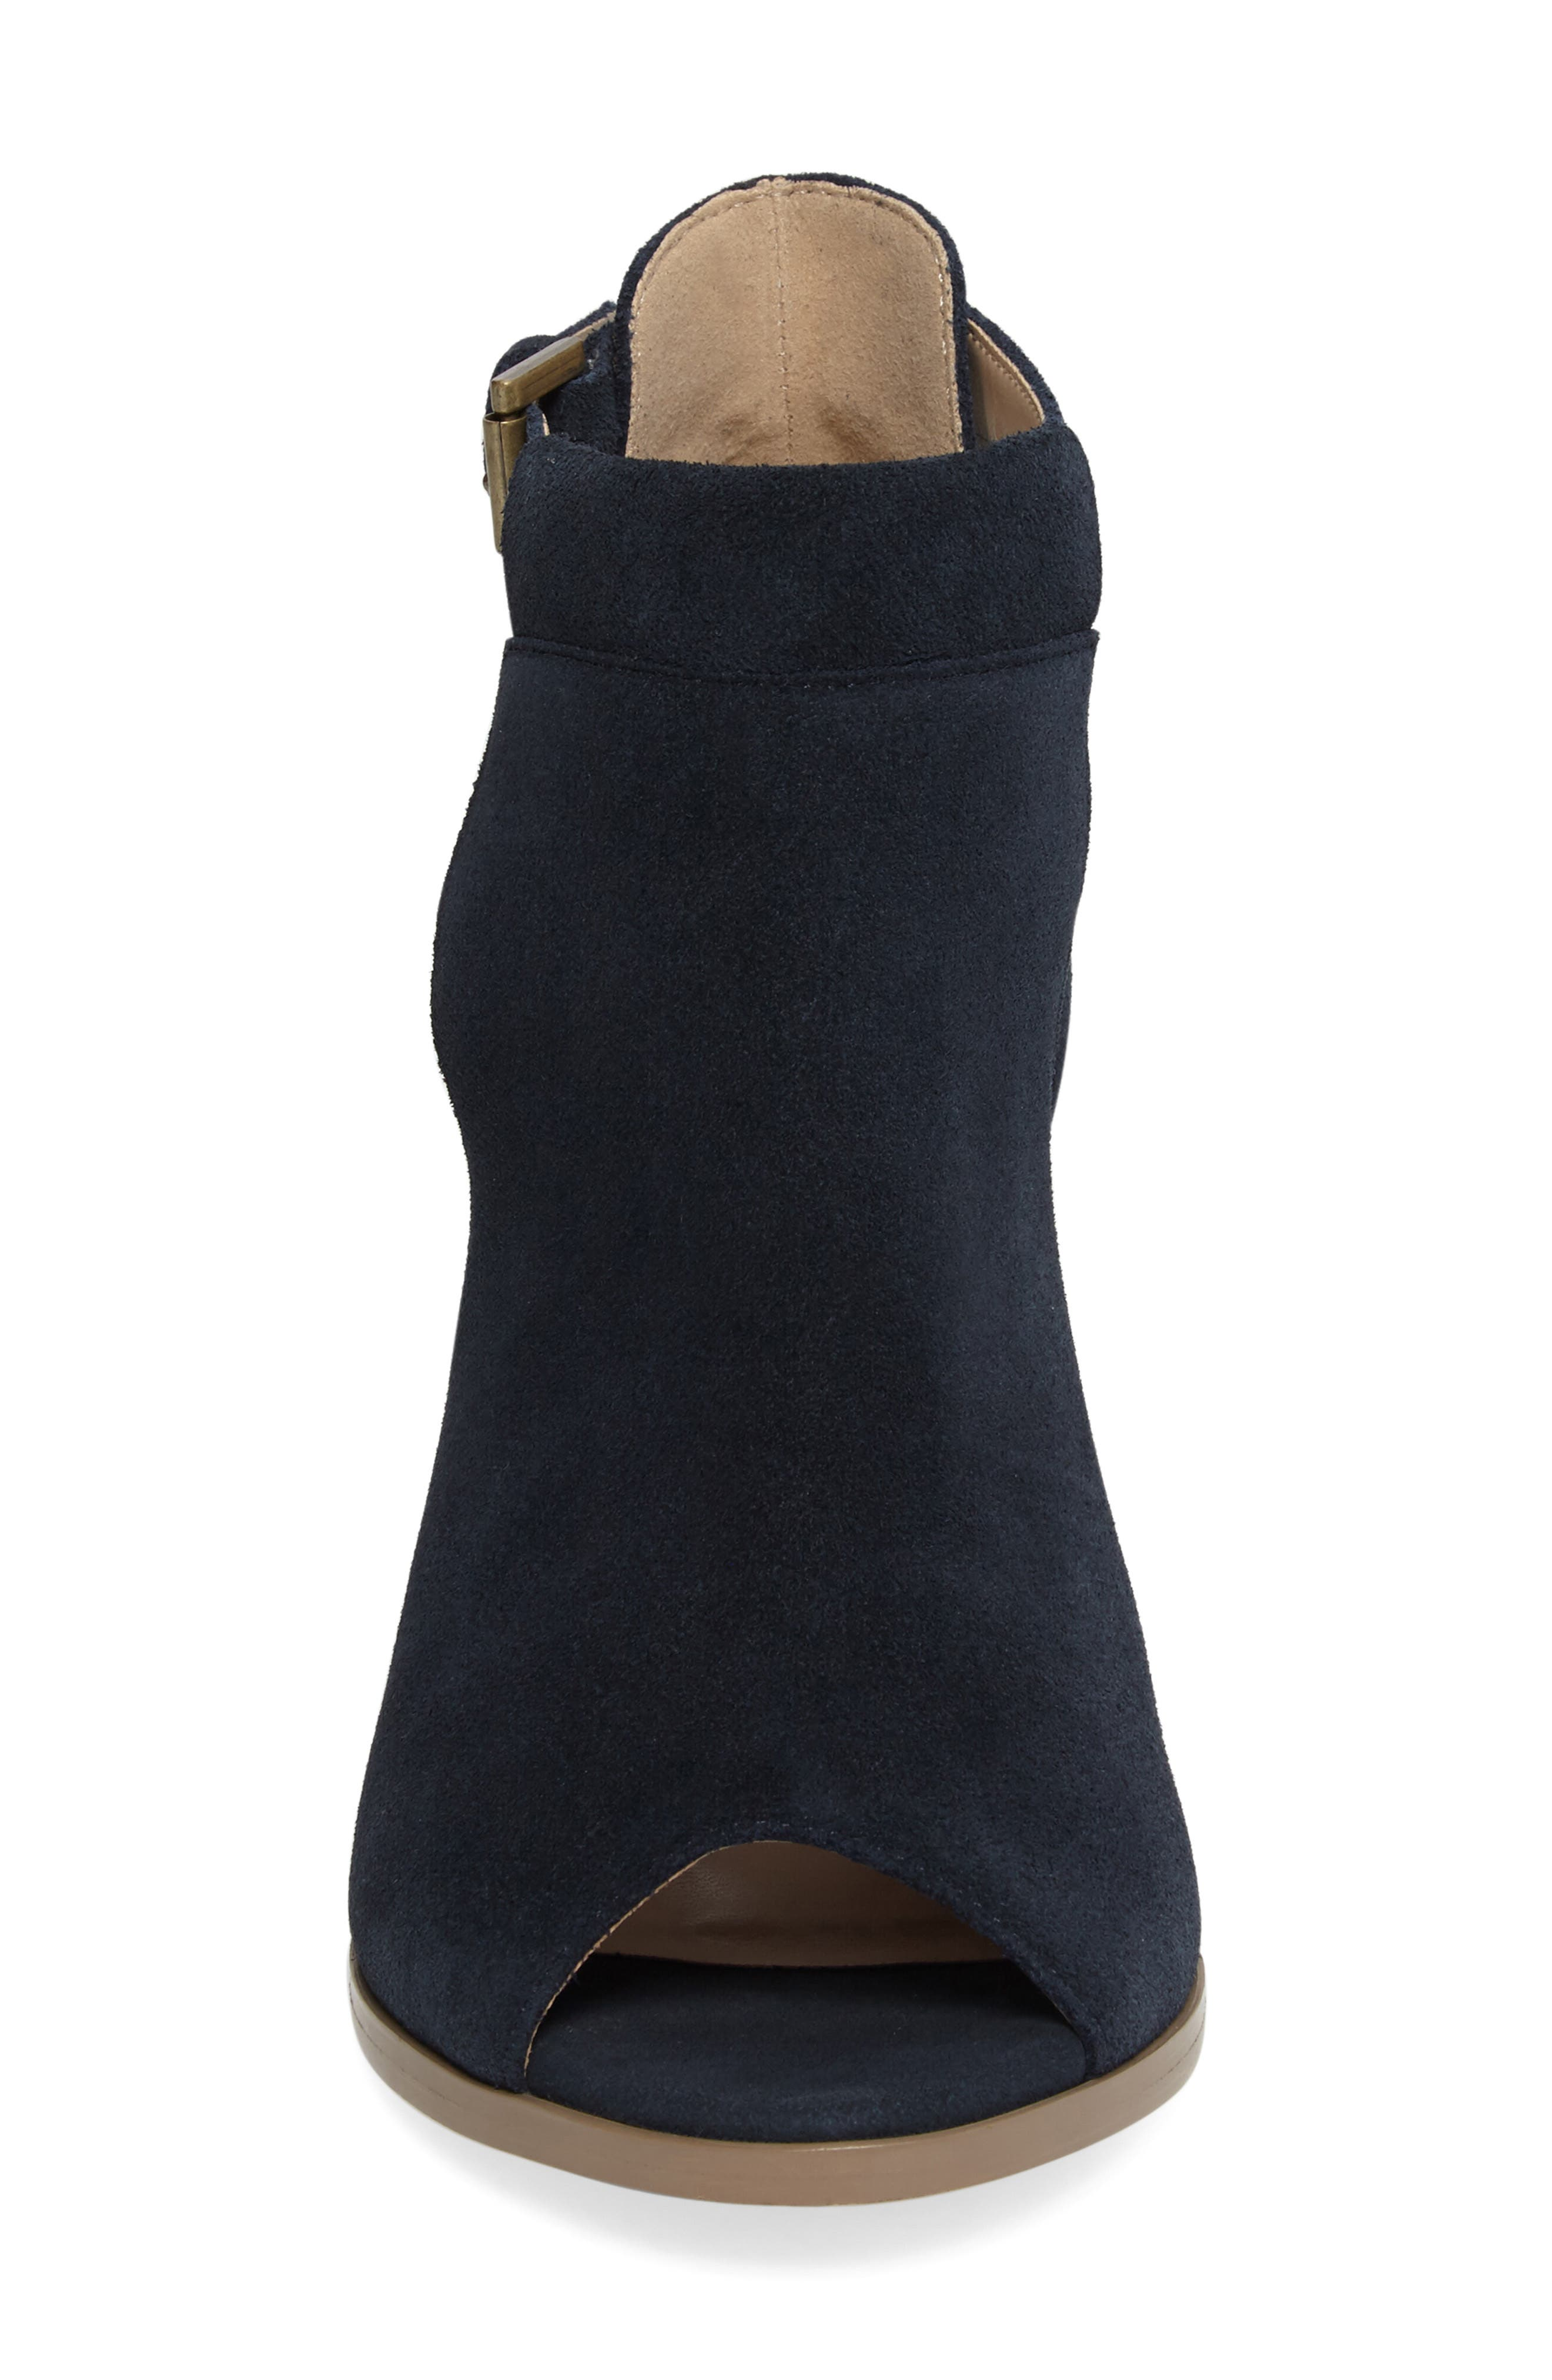 SOLE SOCIETY, 'Ferris' Open Toe Bootie, Alternate thumbnail 4, color, INK SUEDE